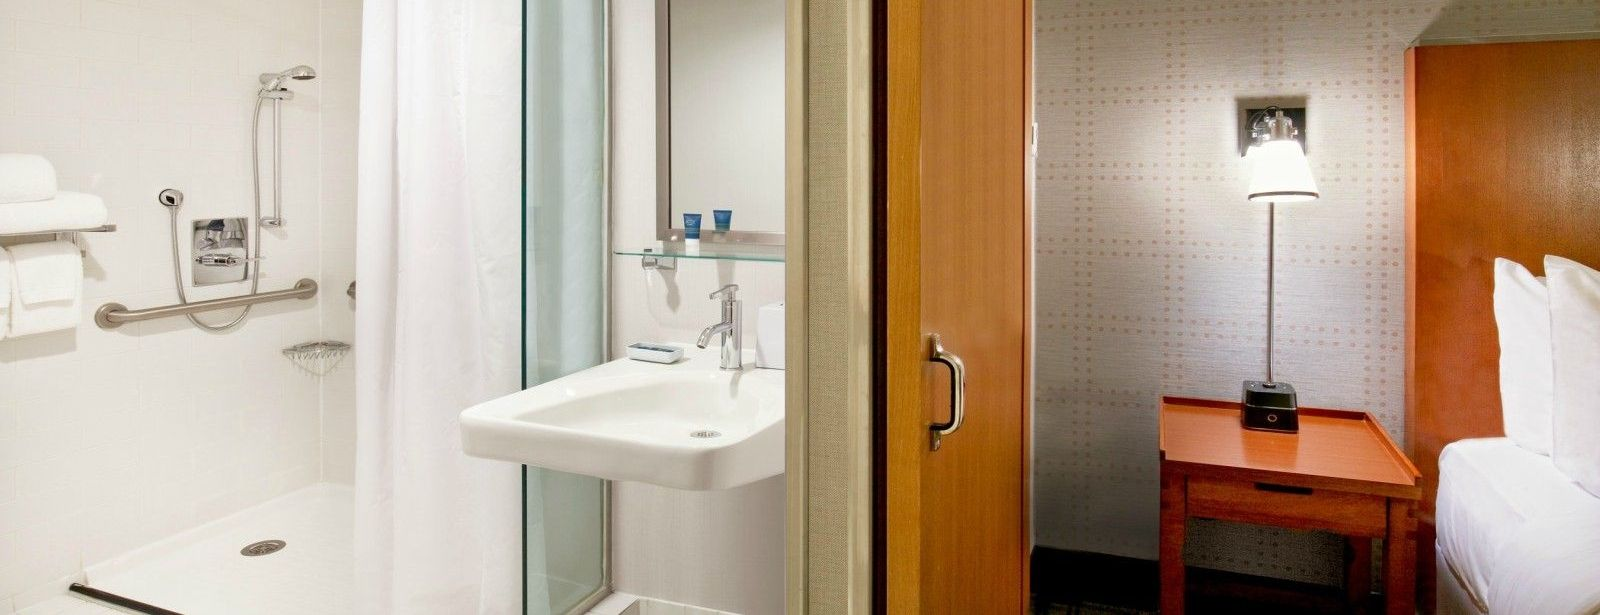 Manhattan Accommodations - Accessible Bathroom